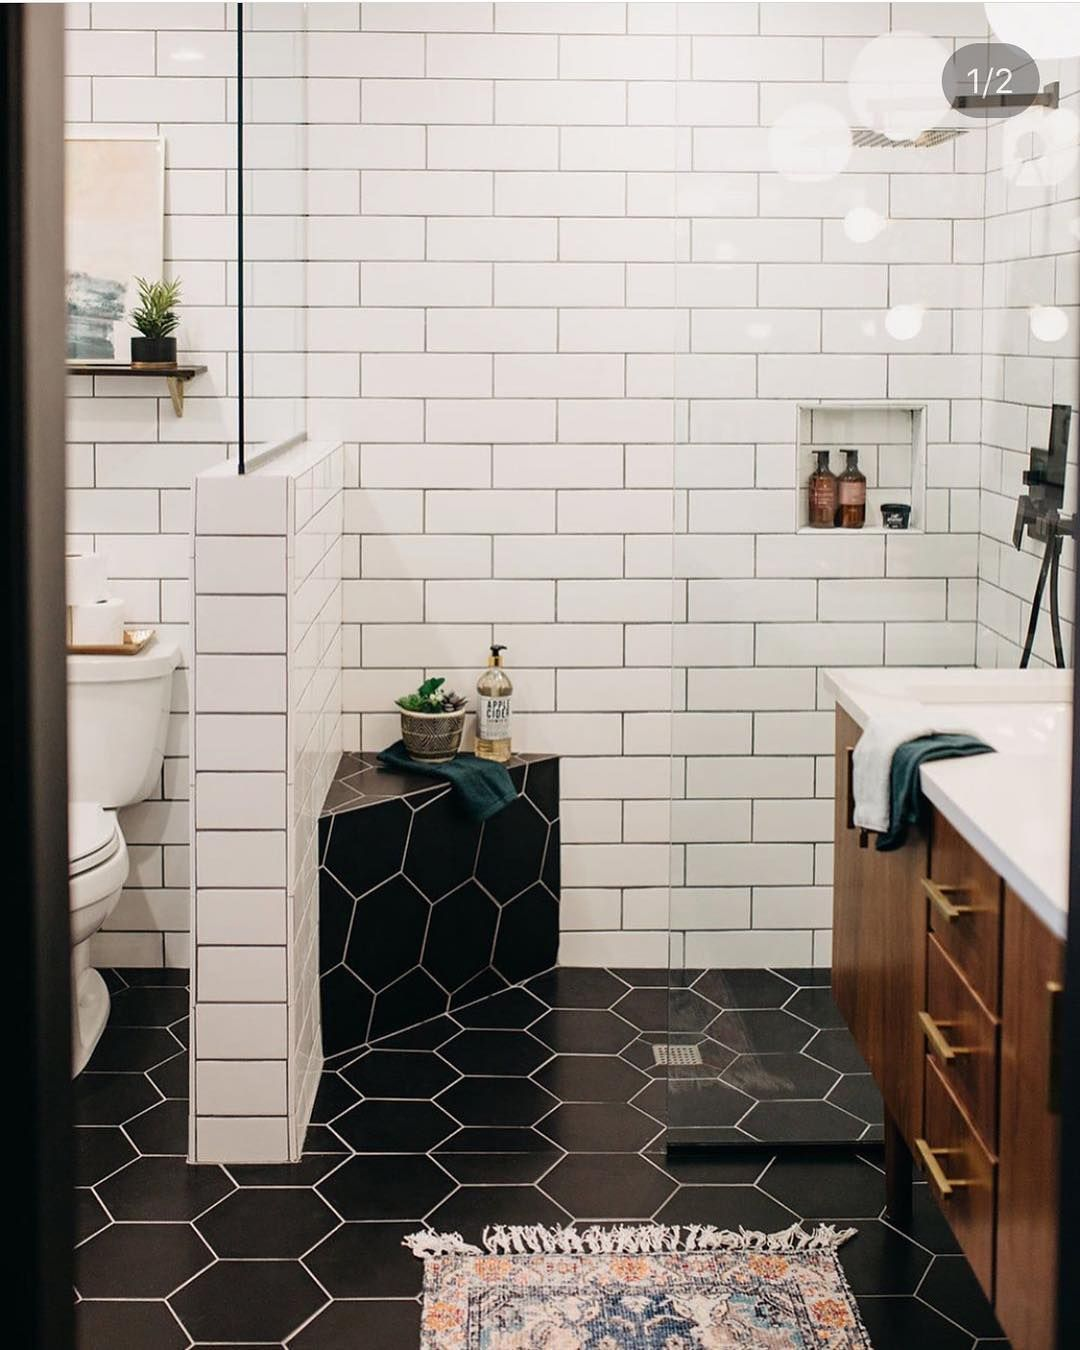 Mid Century Boho Scandinavian On Instagram Absolutely Stunning Bathroom Designed By Gat Mid Century Modern Bathroom Bathroom Interior Design Bathroom Design